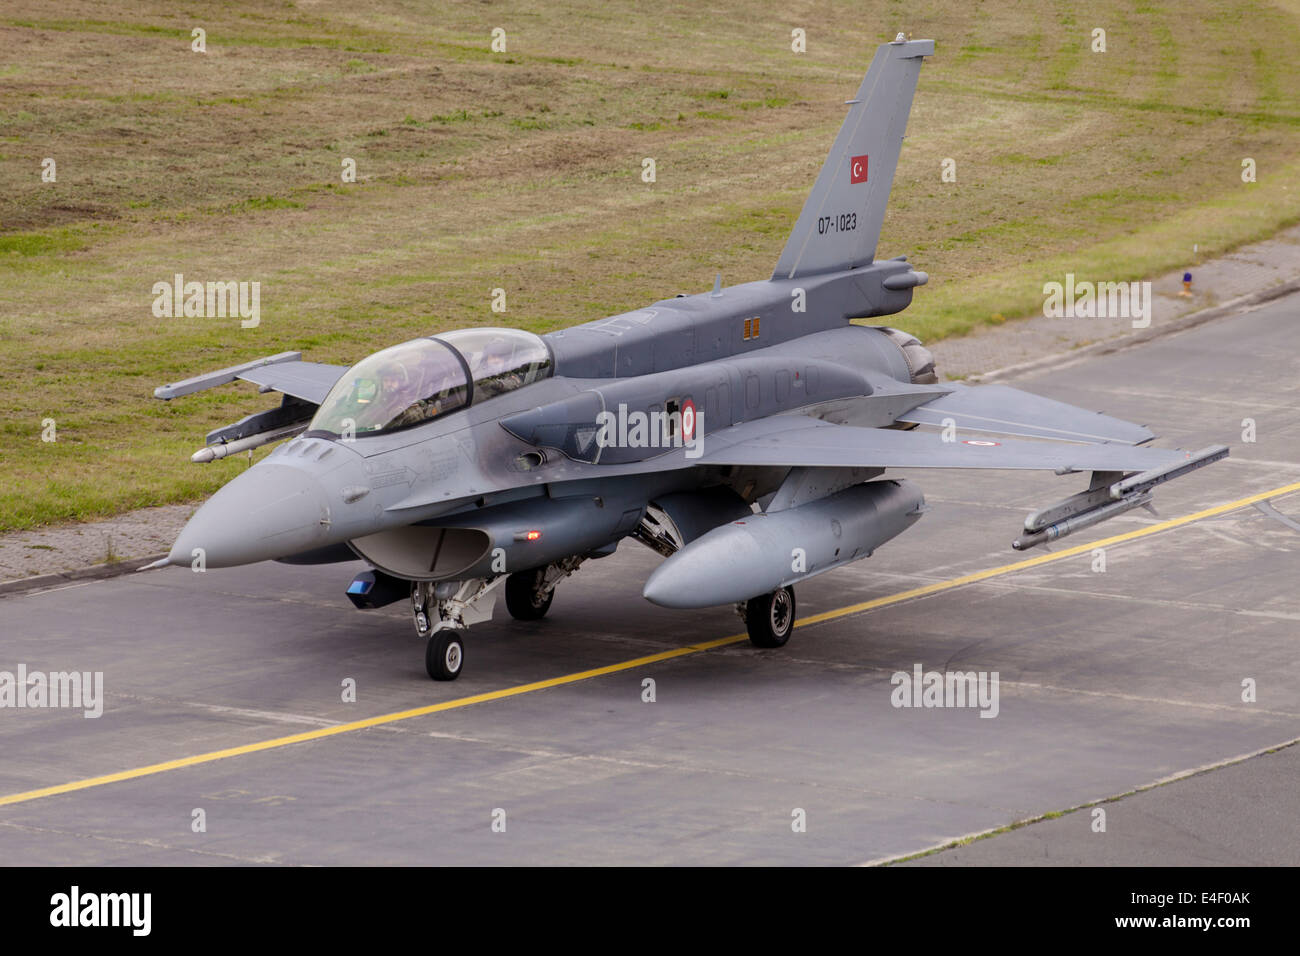 Turkish Air Force F-16D Block 52 with conformal fuel tanks during NATO exercise JAWTEX 2014, Wittmund, Germany. - Stock Image